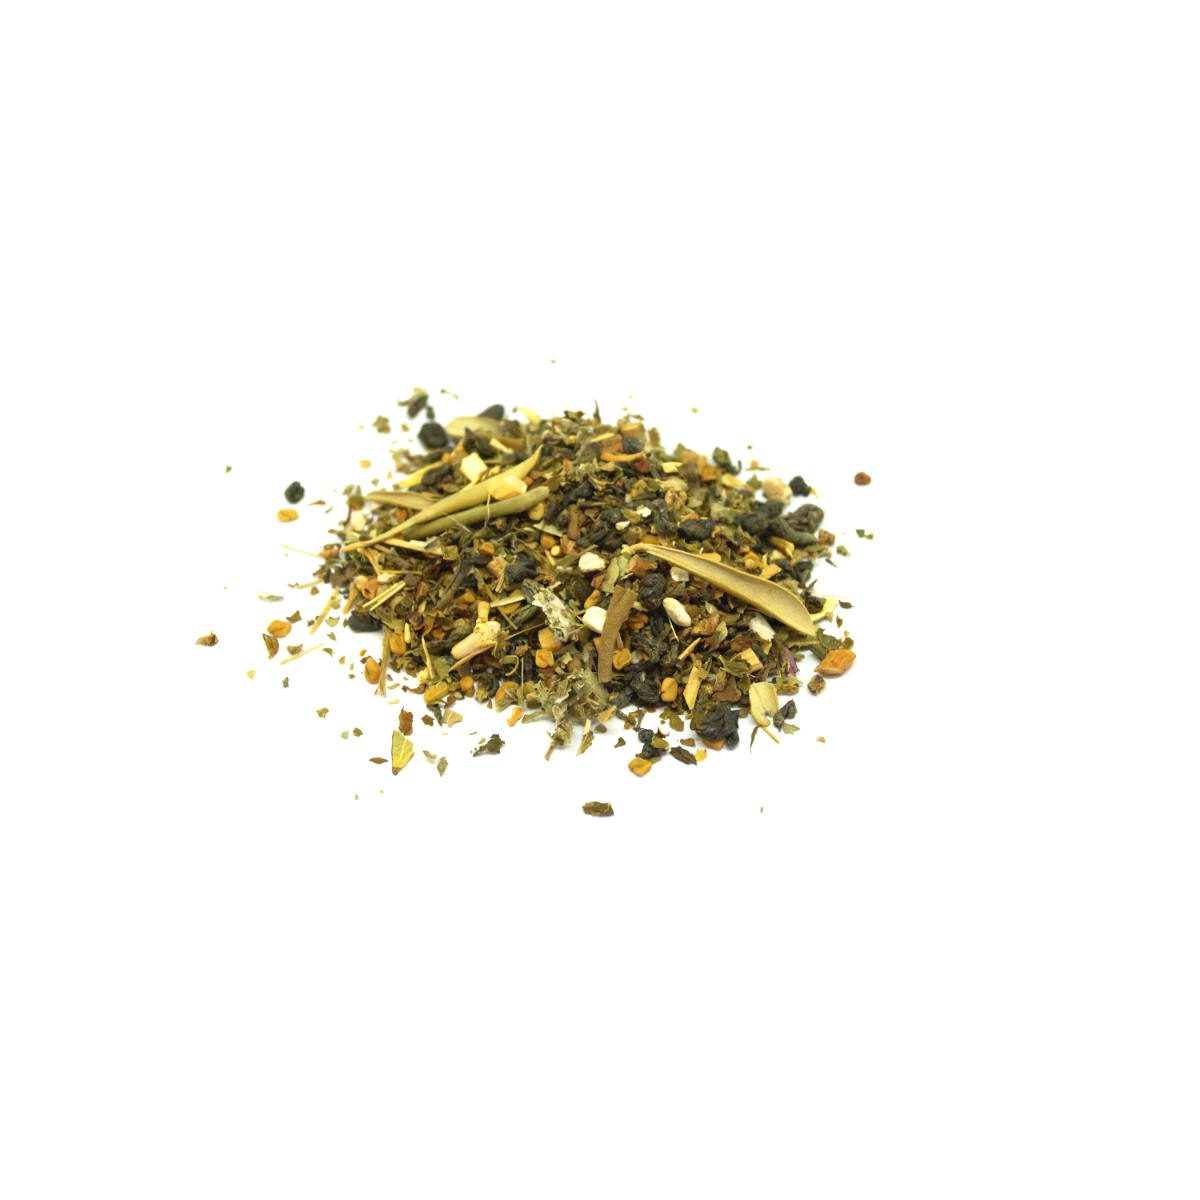 Diabetes Blend Self Help Tea to help ease the side effects of body balance blood sugars and other ancillary side effects that can come with this diagnosis.